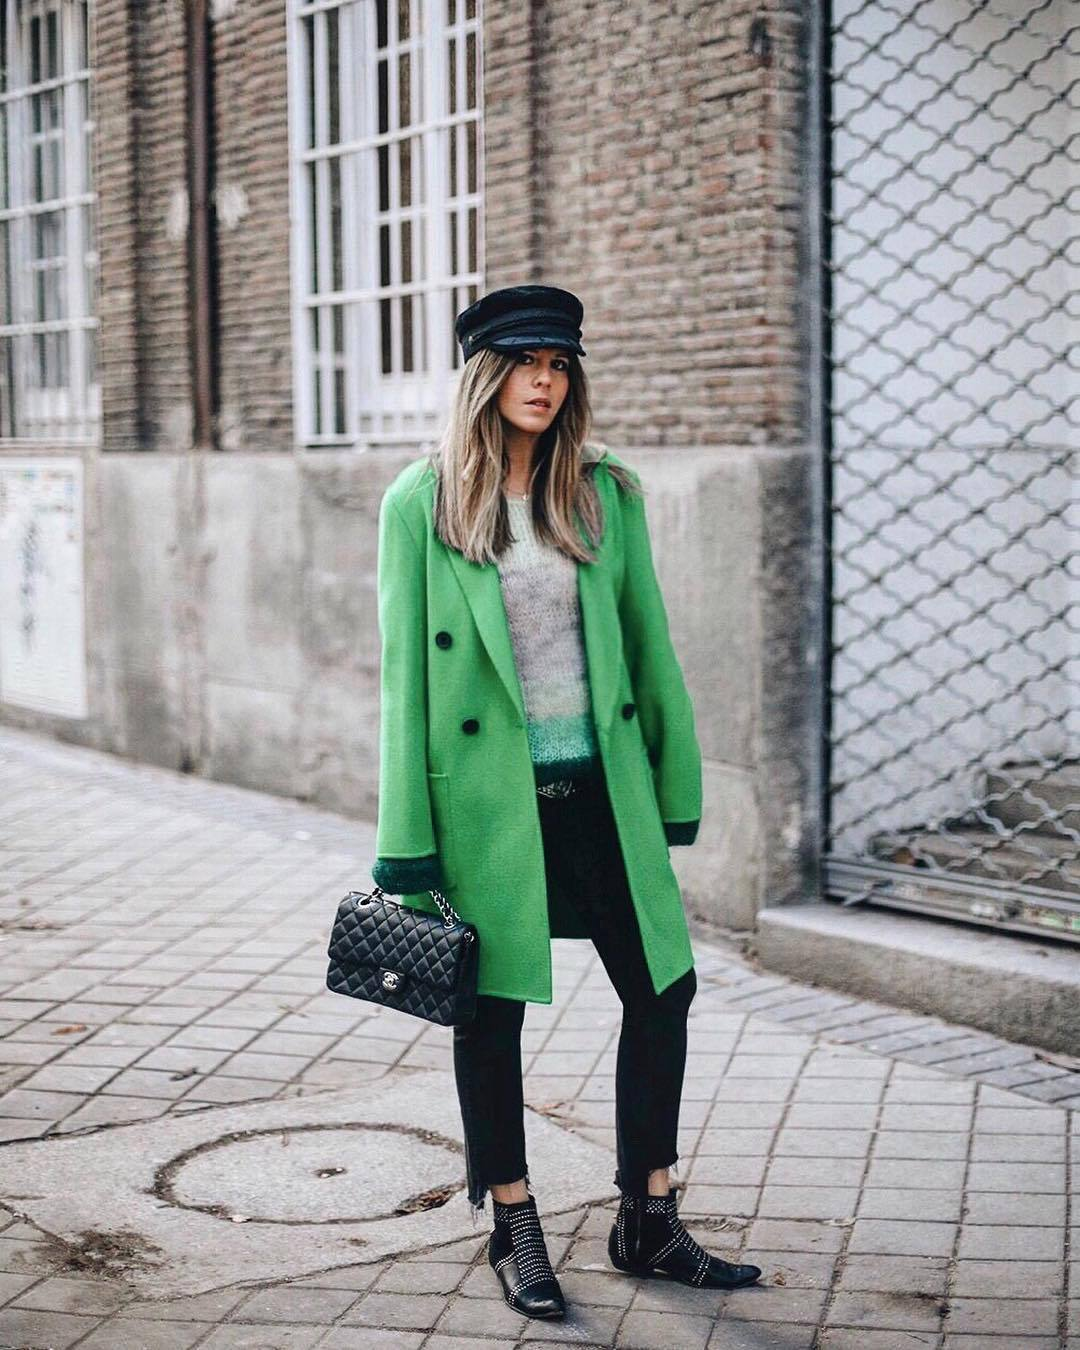 coat green coat wool coat double breasted black boots ankle boots flat boots cropped jeans black skinny jeans black bag chanel bag grey sweater beret